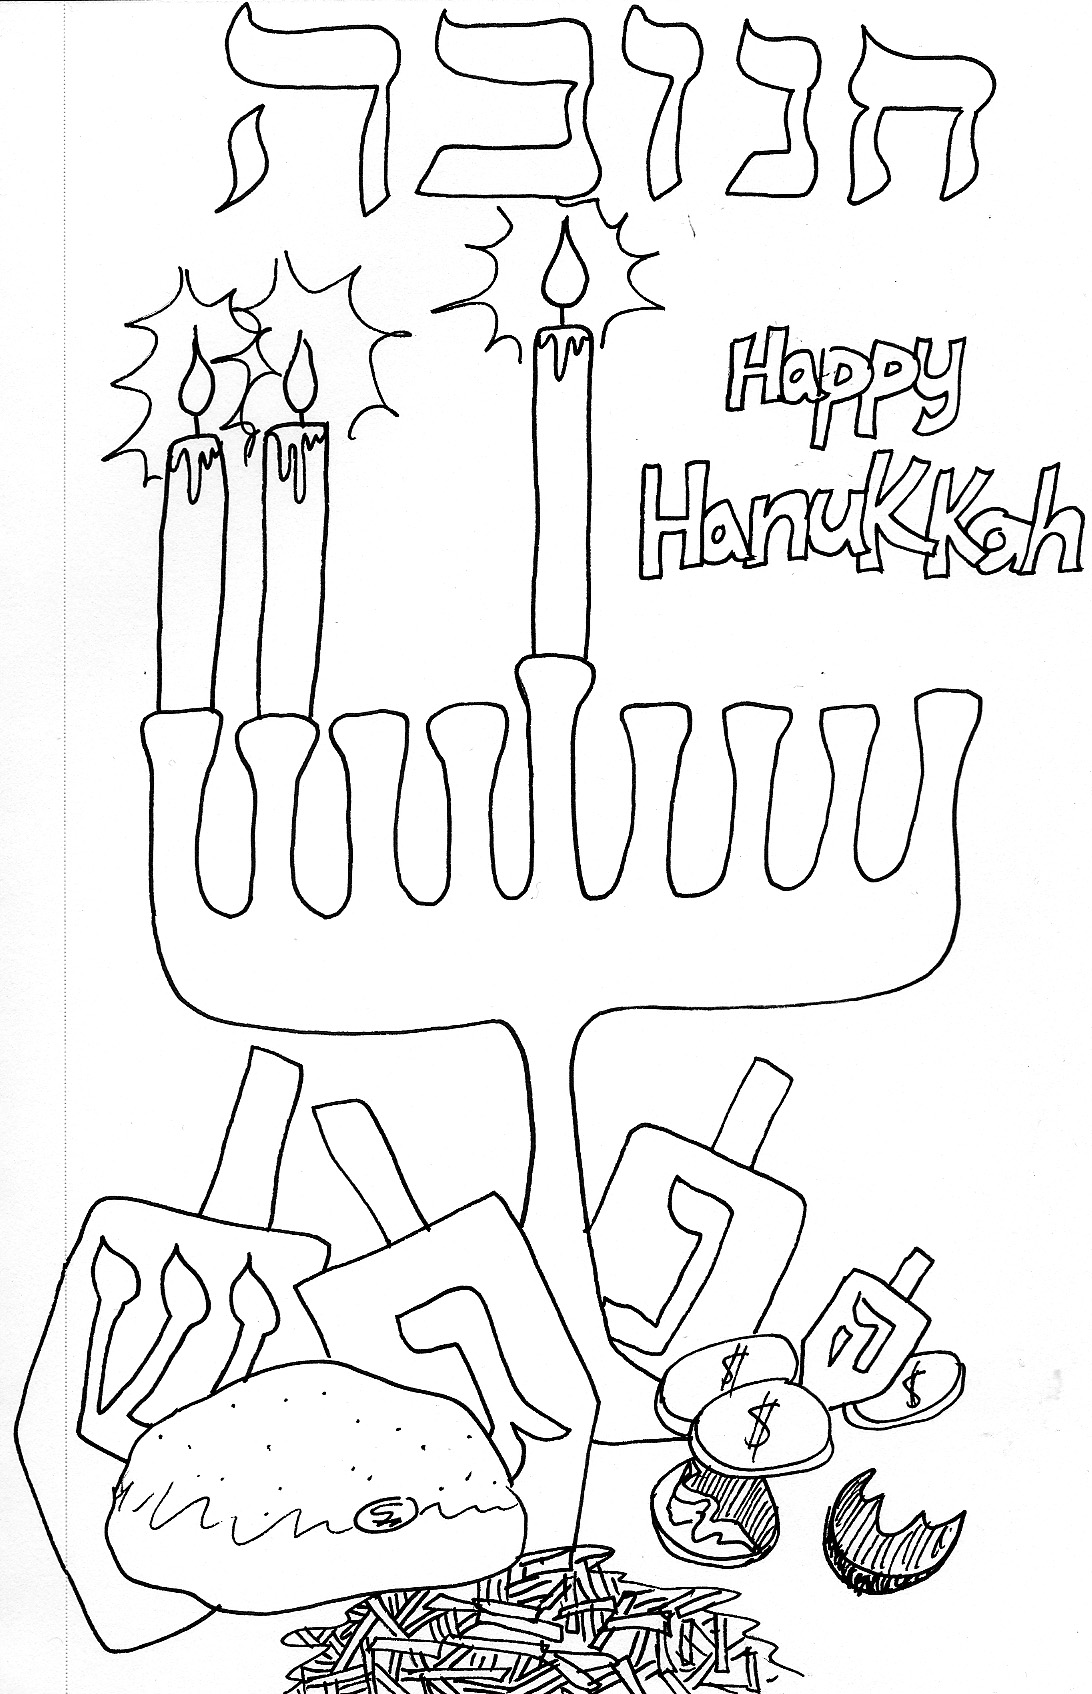 Free Printable Hanukkah Coloring Pages For Kids Best Coloring